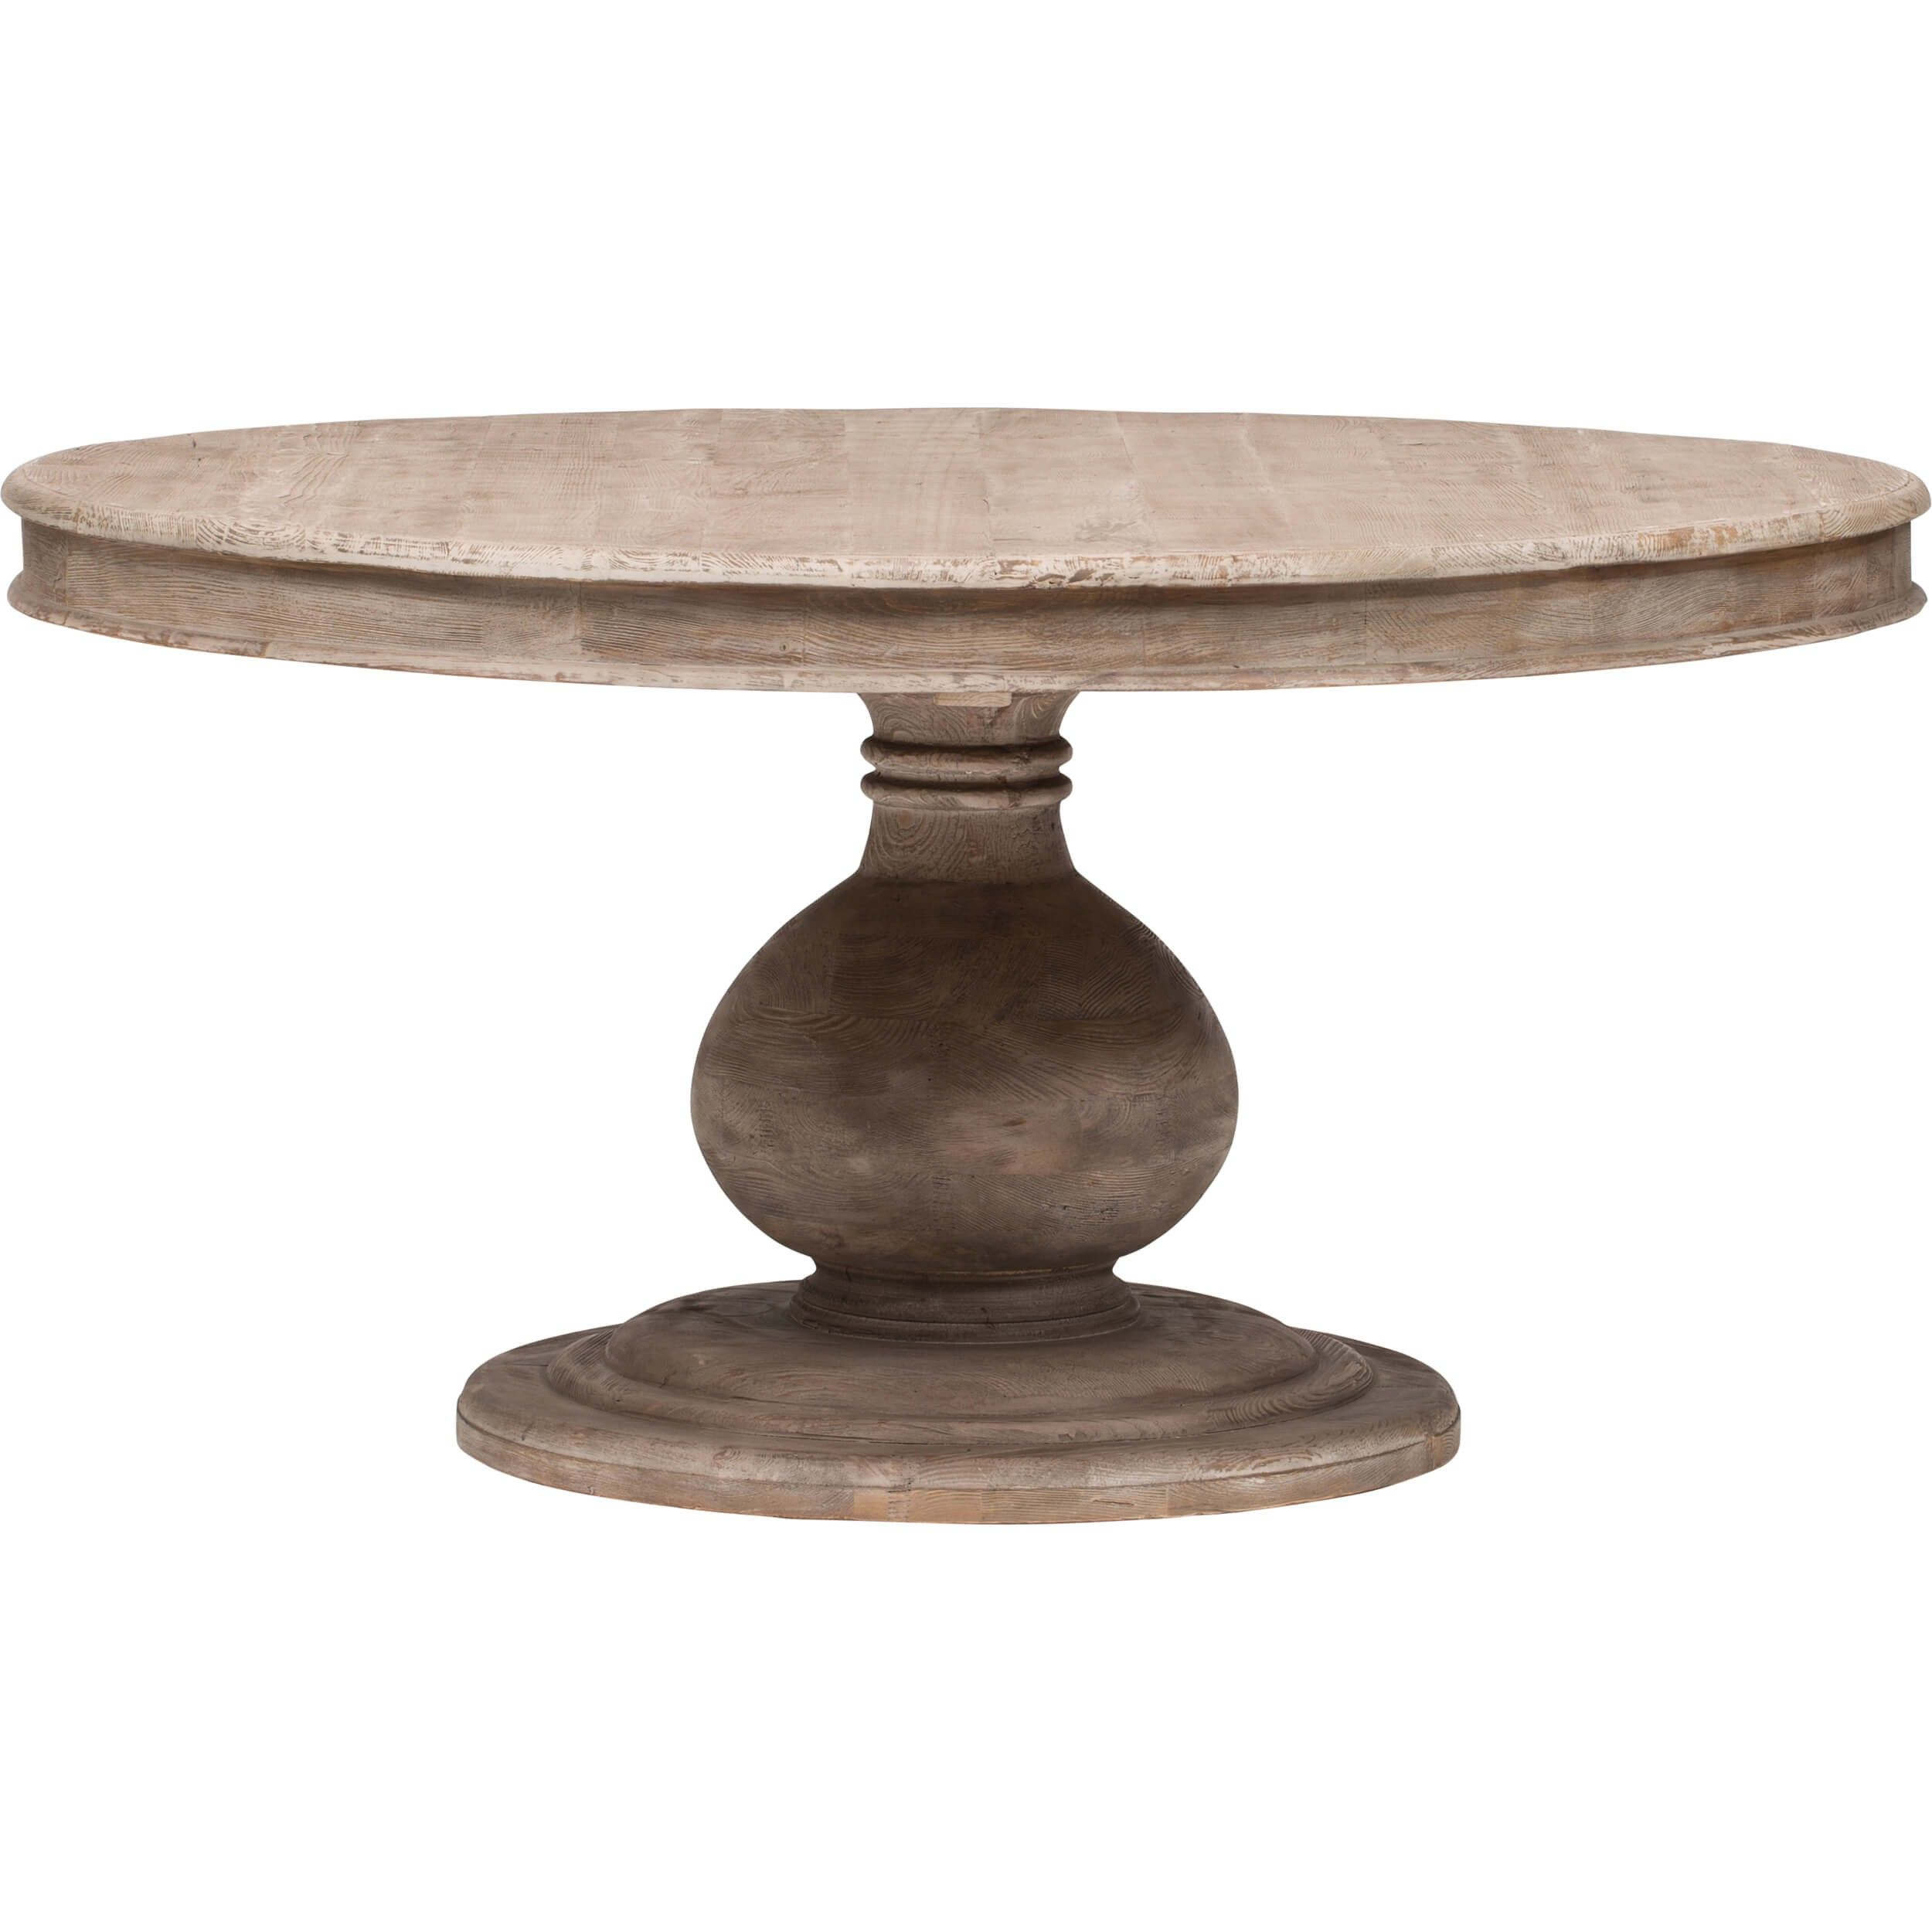 Baldwin Round Dining Table Oval Table Dining Round Dining Round Dining Table